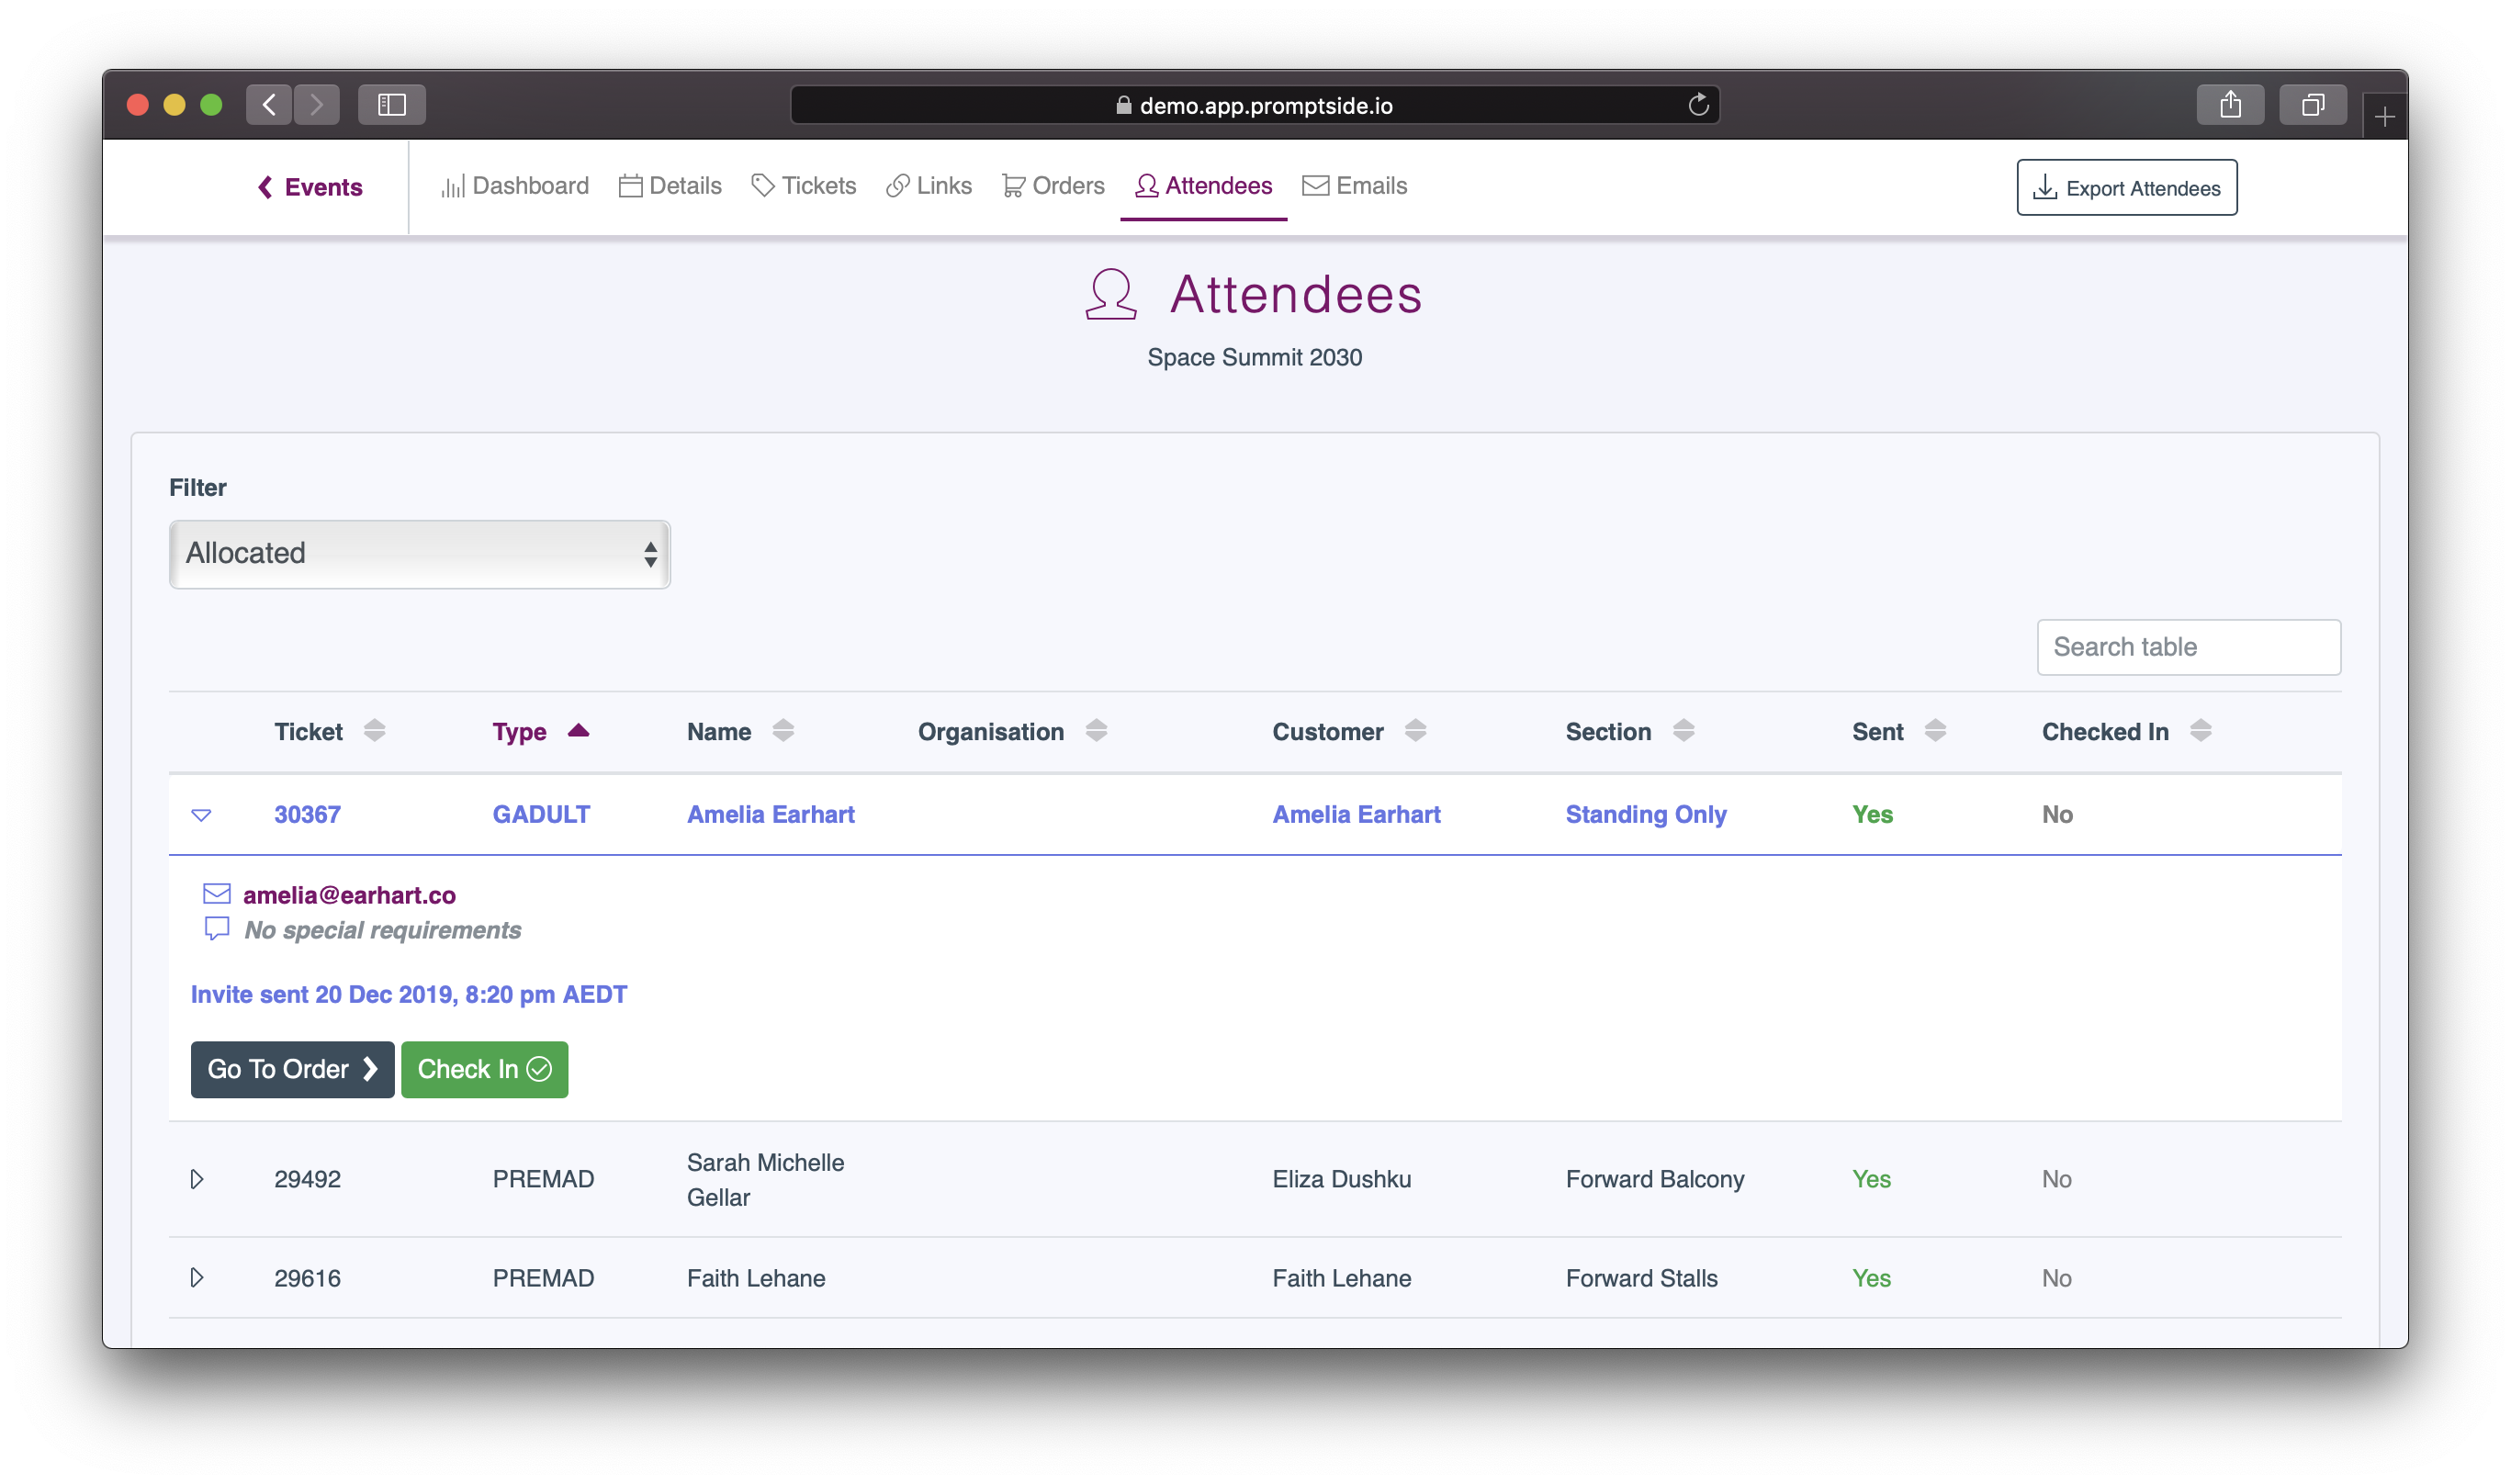 Screenshot of a list of attendees and their details